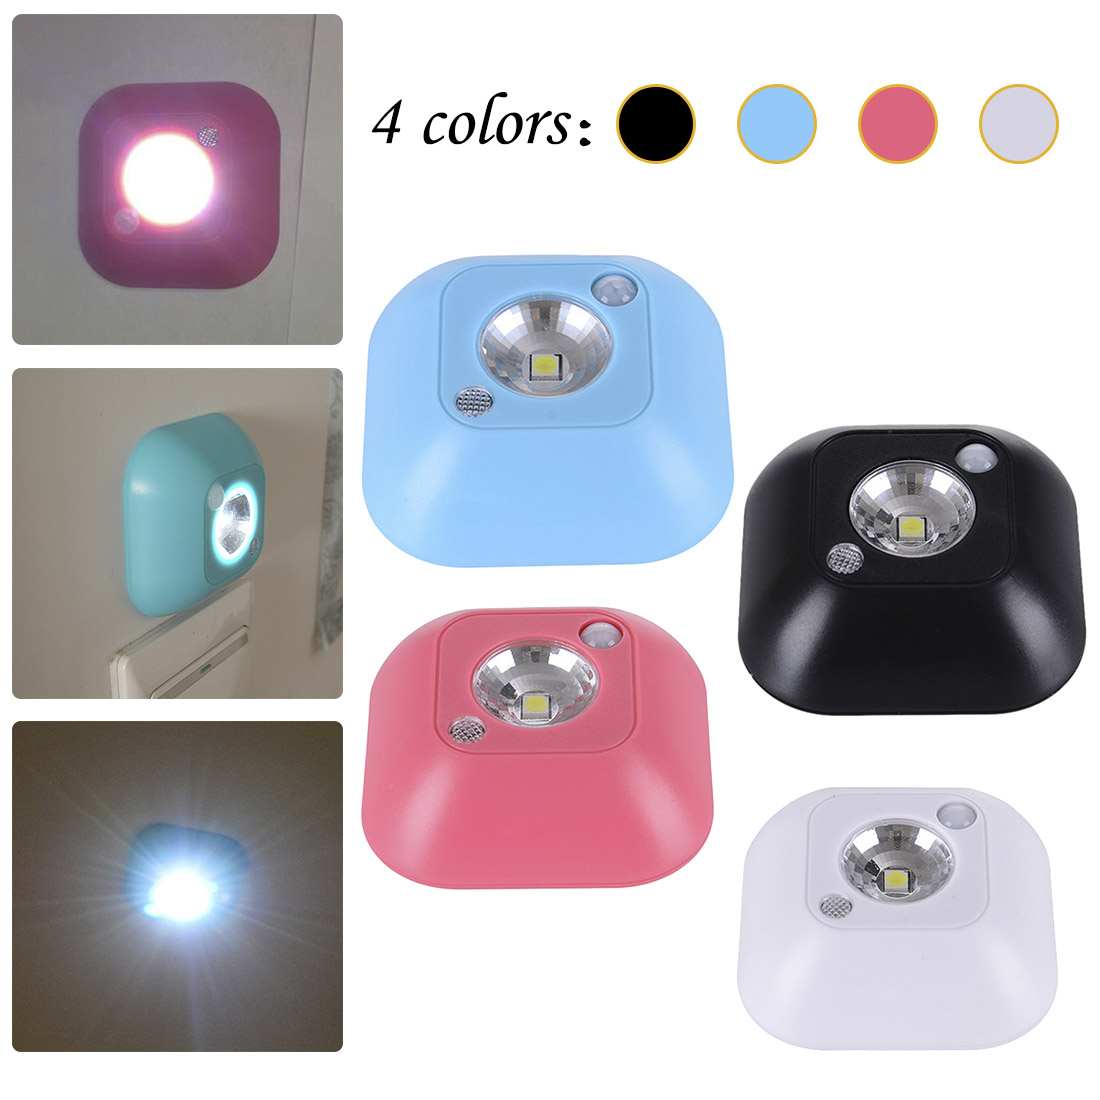 Wardrobe Cabinet Night Lamp Battery Powered Mini LED Wireless Night Light Infrared Motion Activated Sensor Lights Wall Emergency